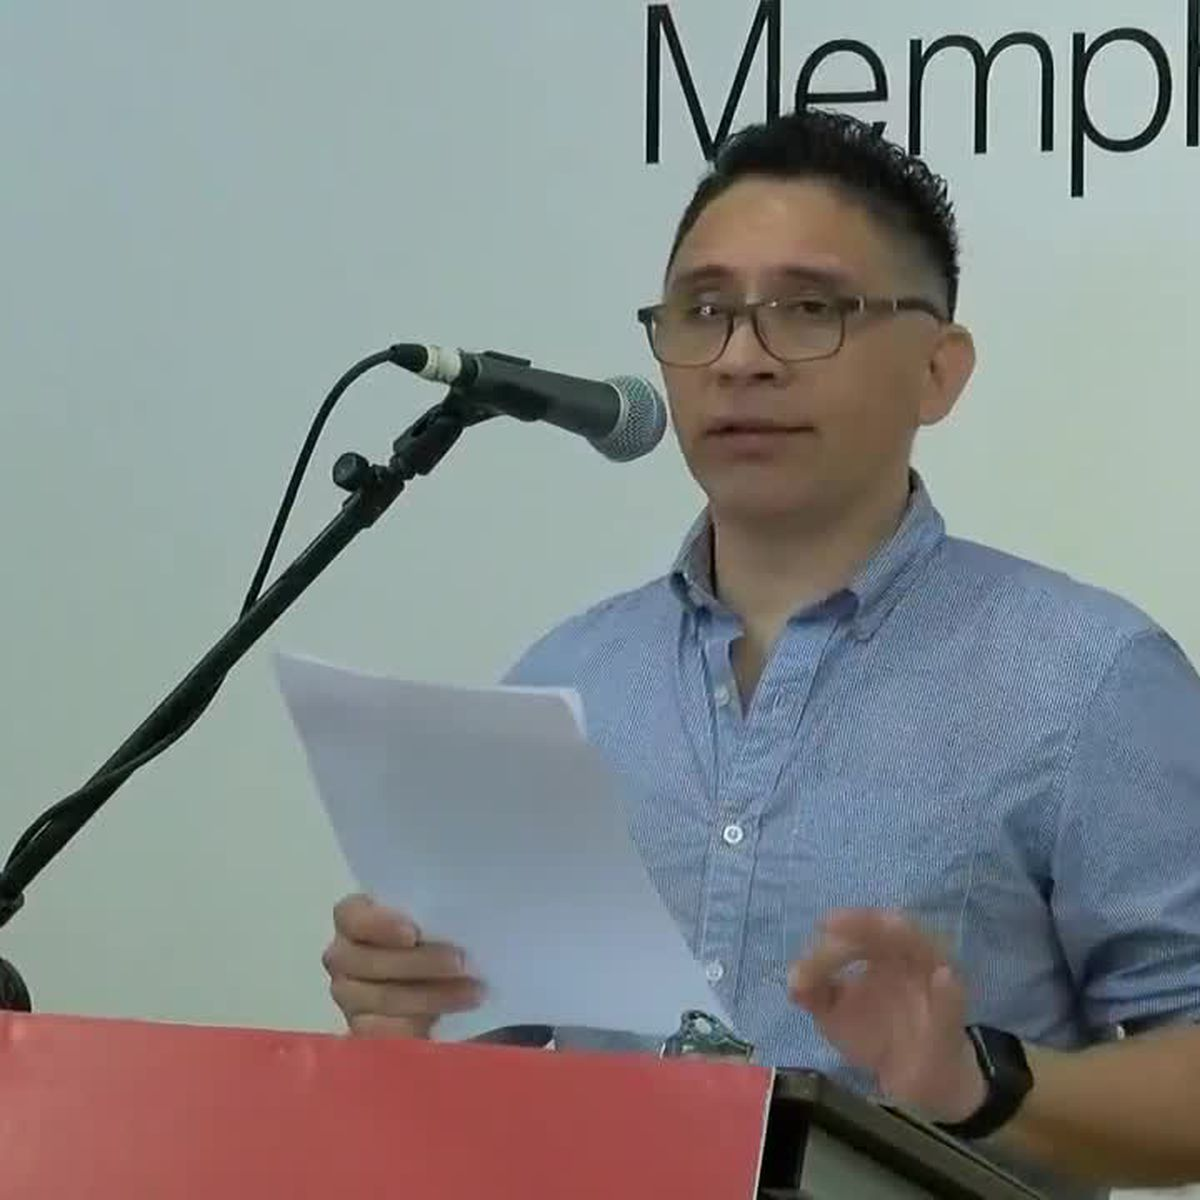 Memphis-based journalist Manuel Duran talks about the 15 months he spent in ICE custody